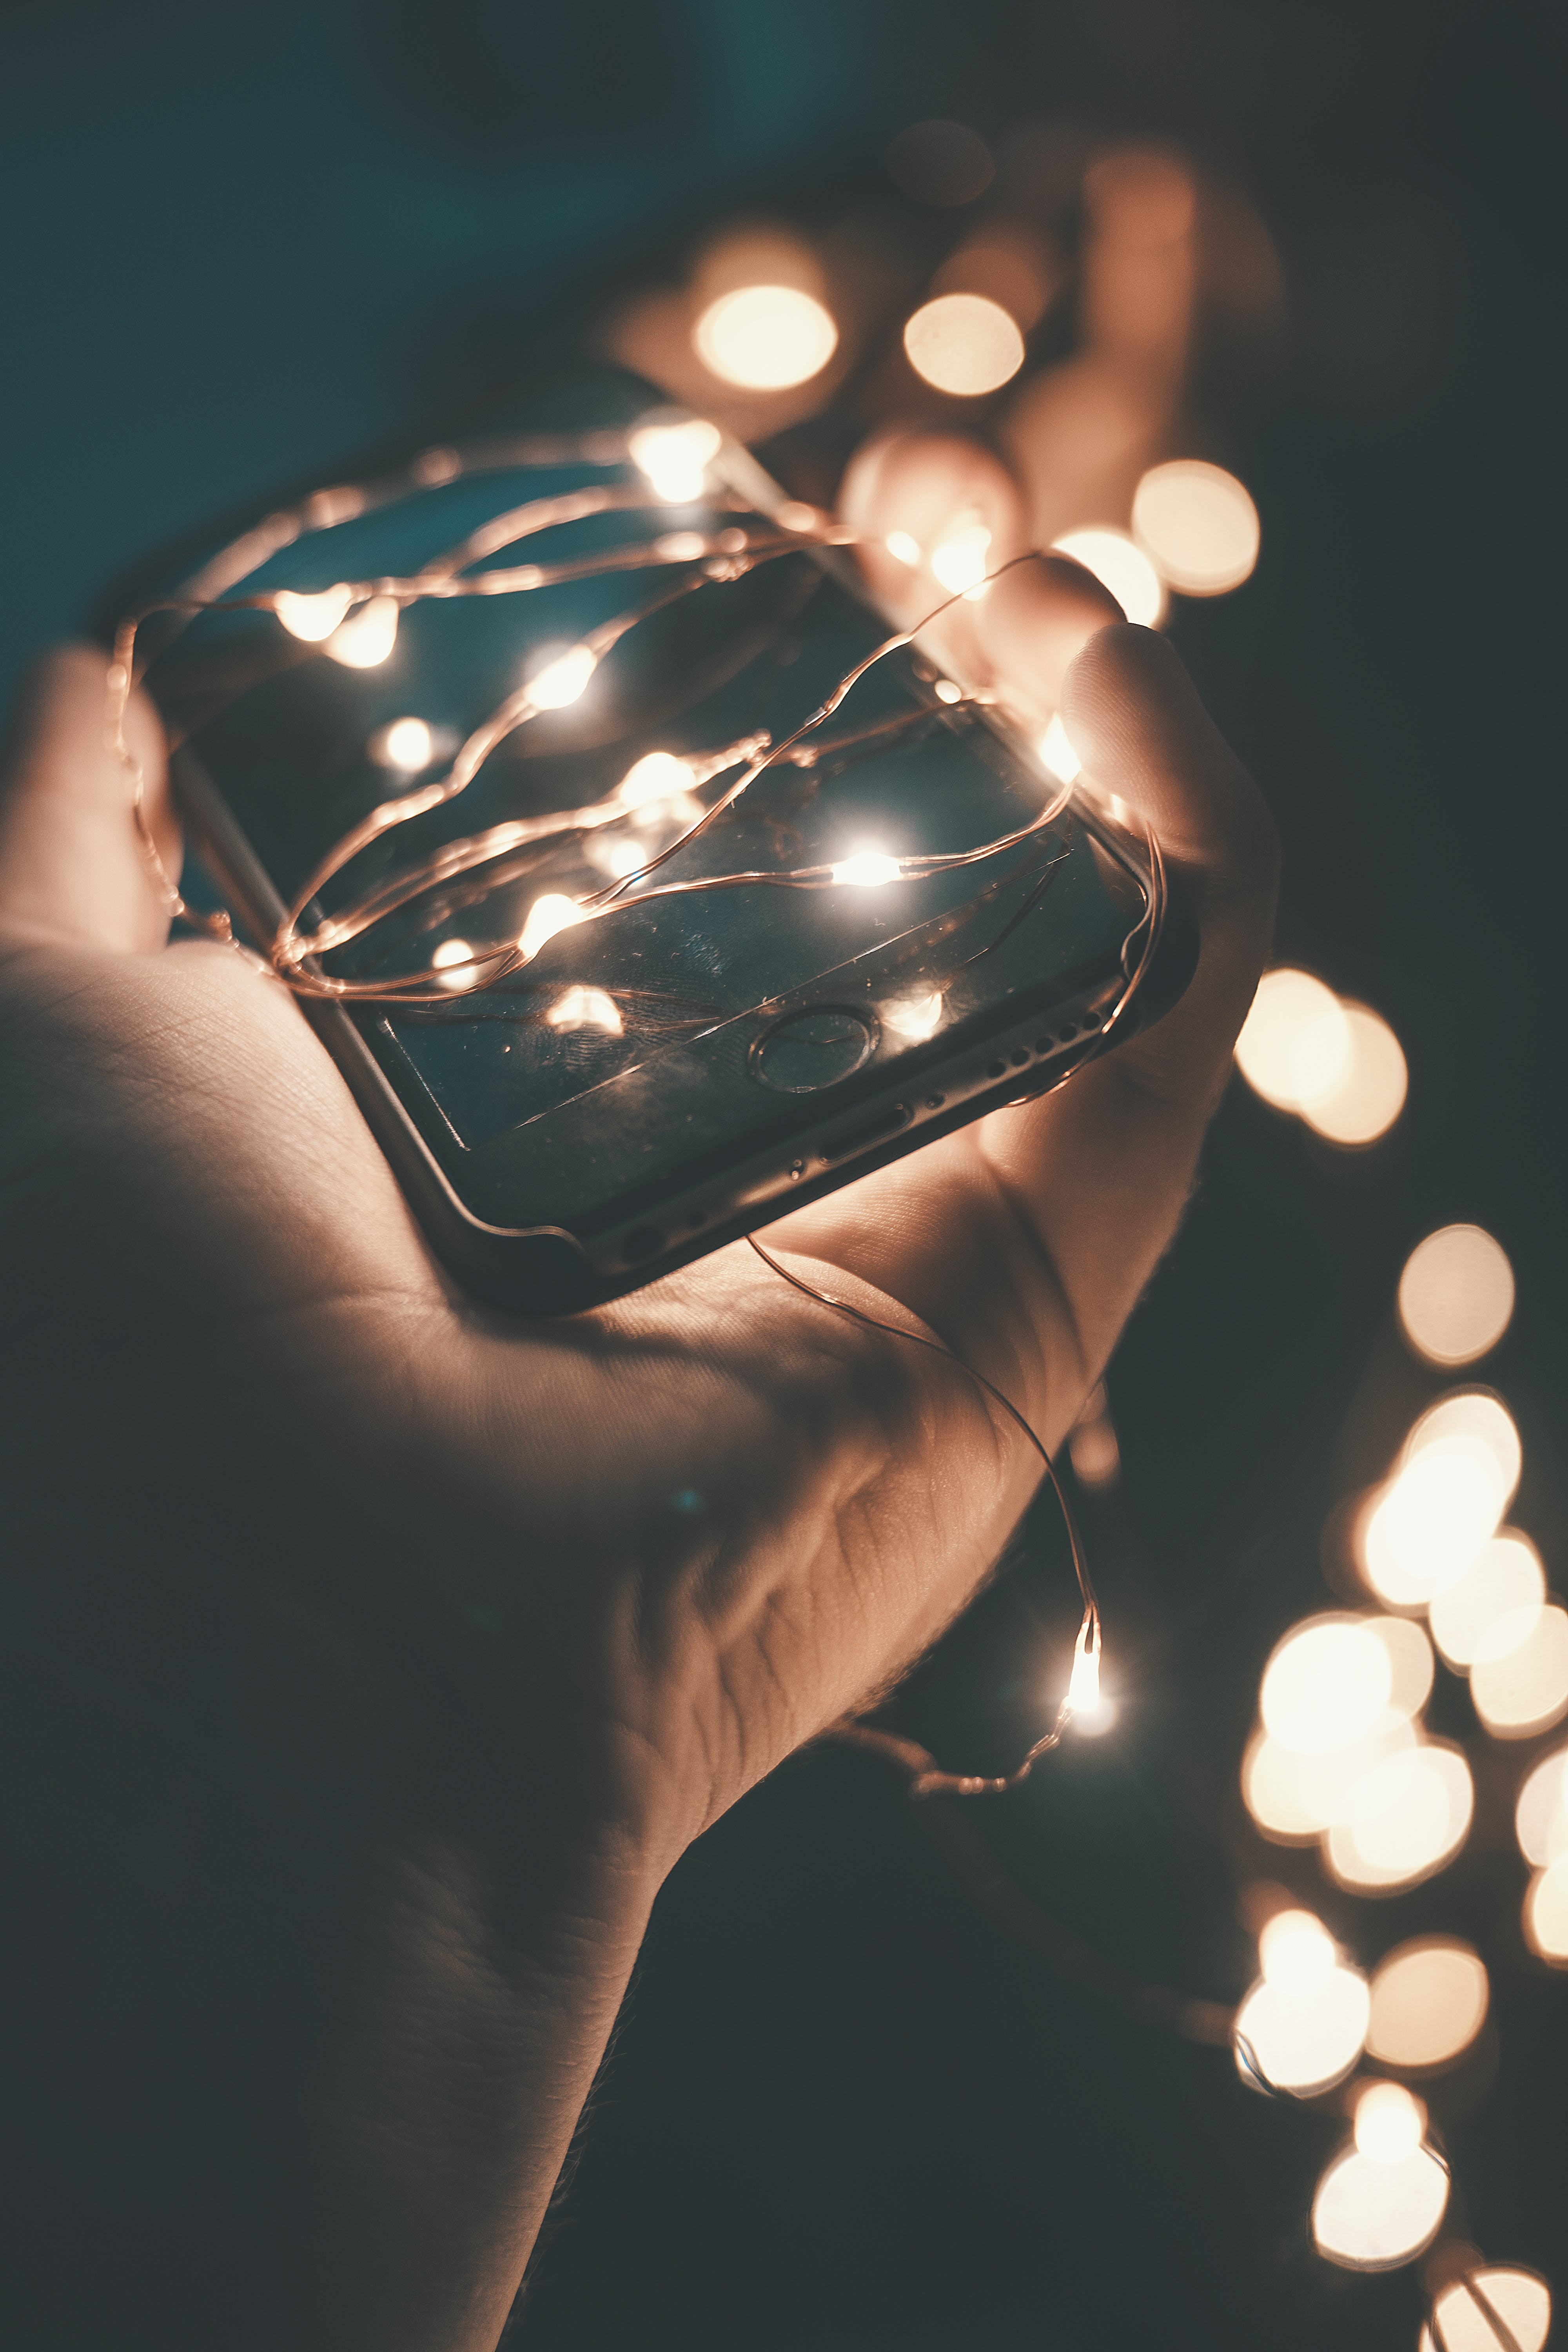 Person Holding Space Gray Iphone 6 With String Lights during Nighttime